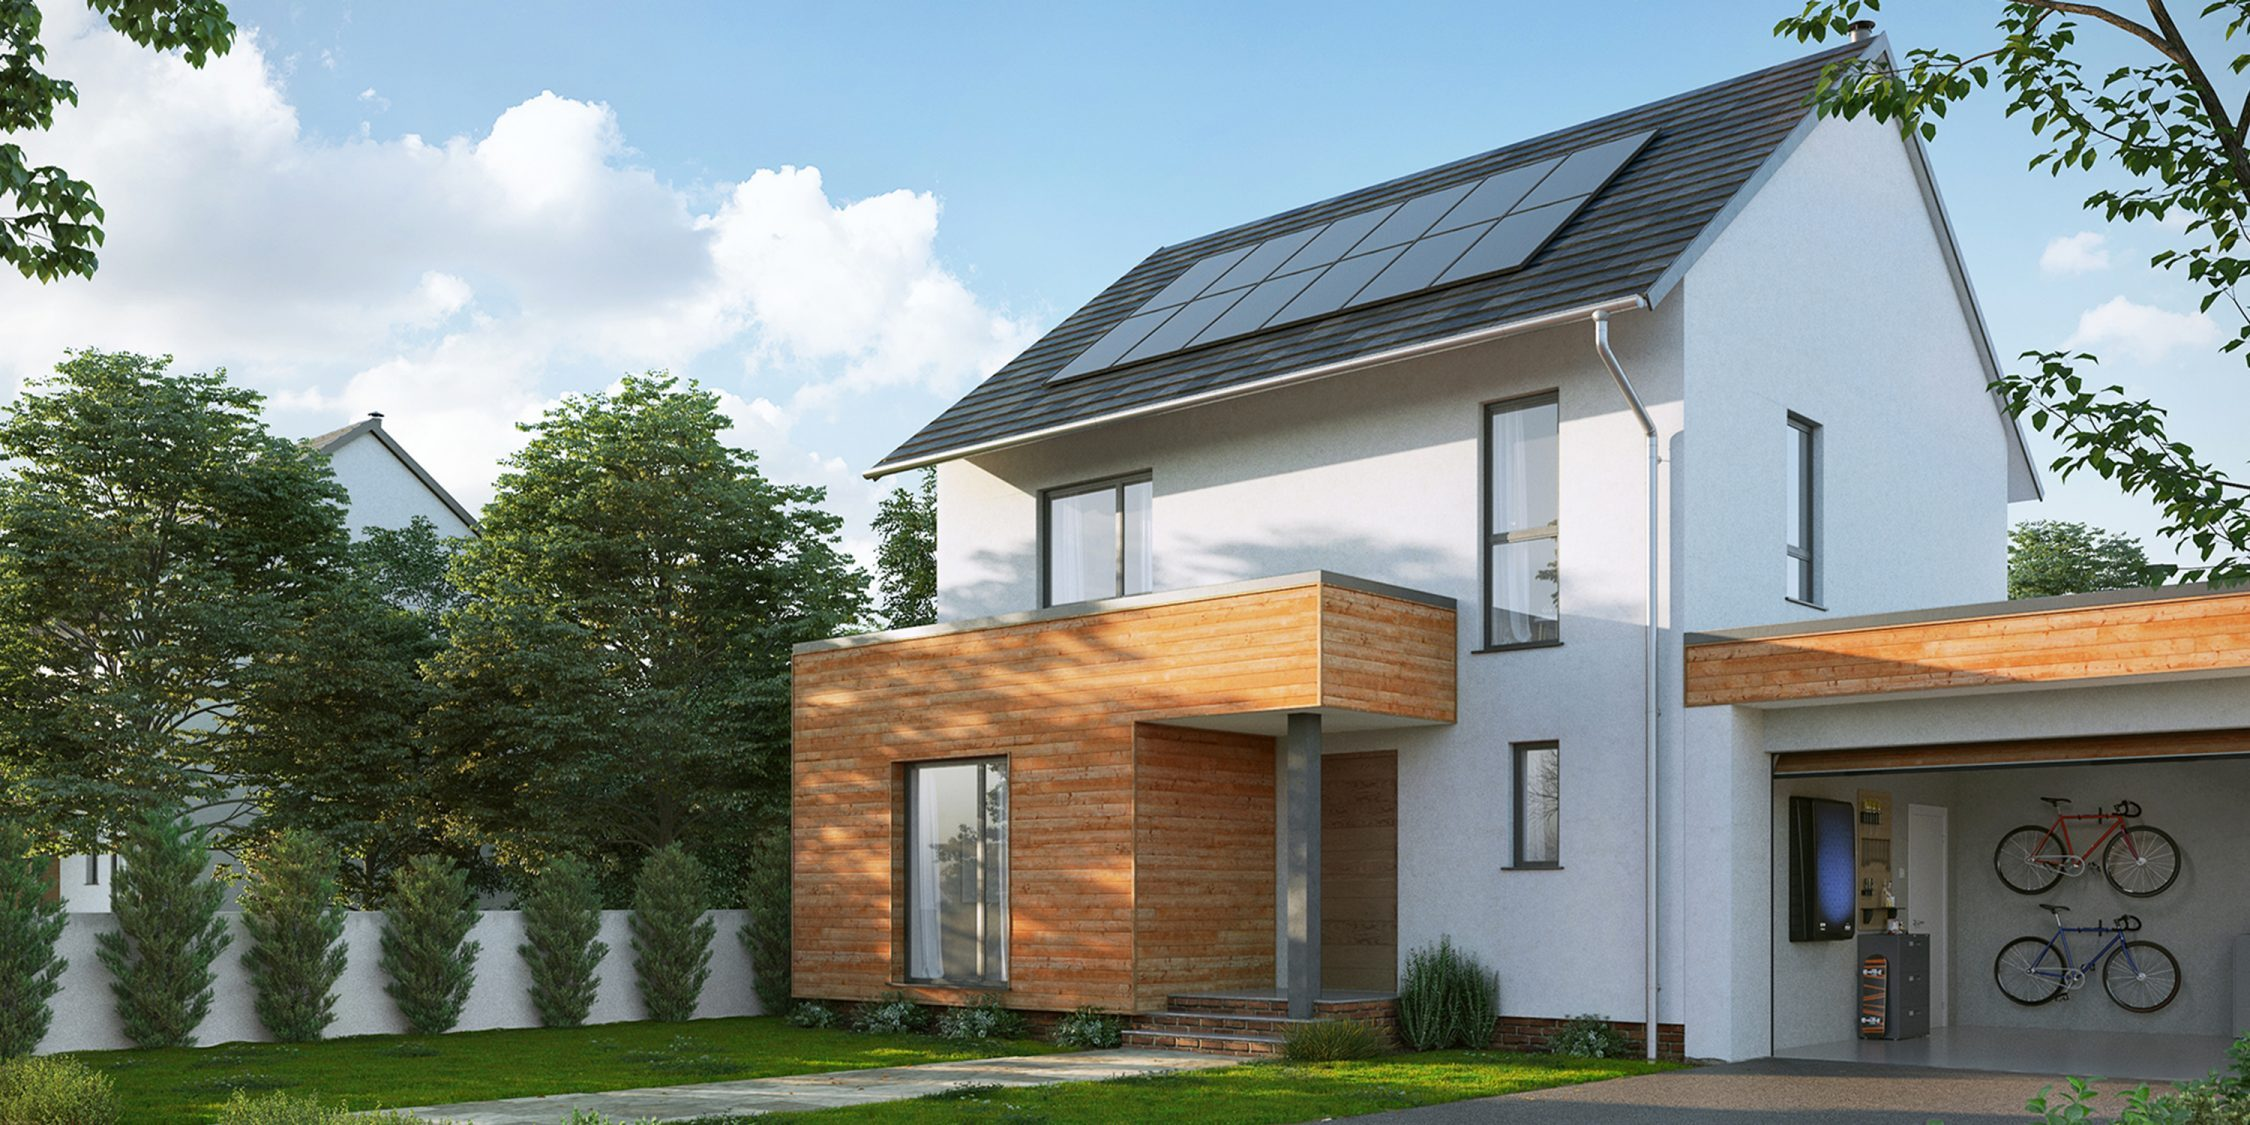 Nissan energy solar for home